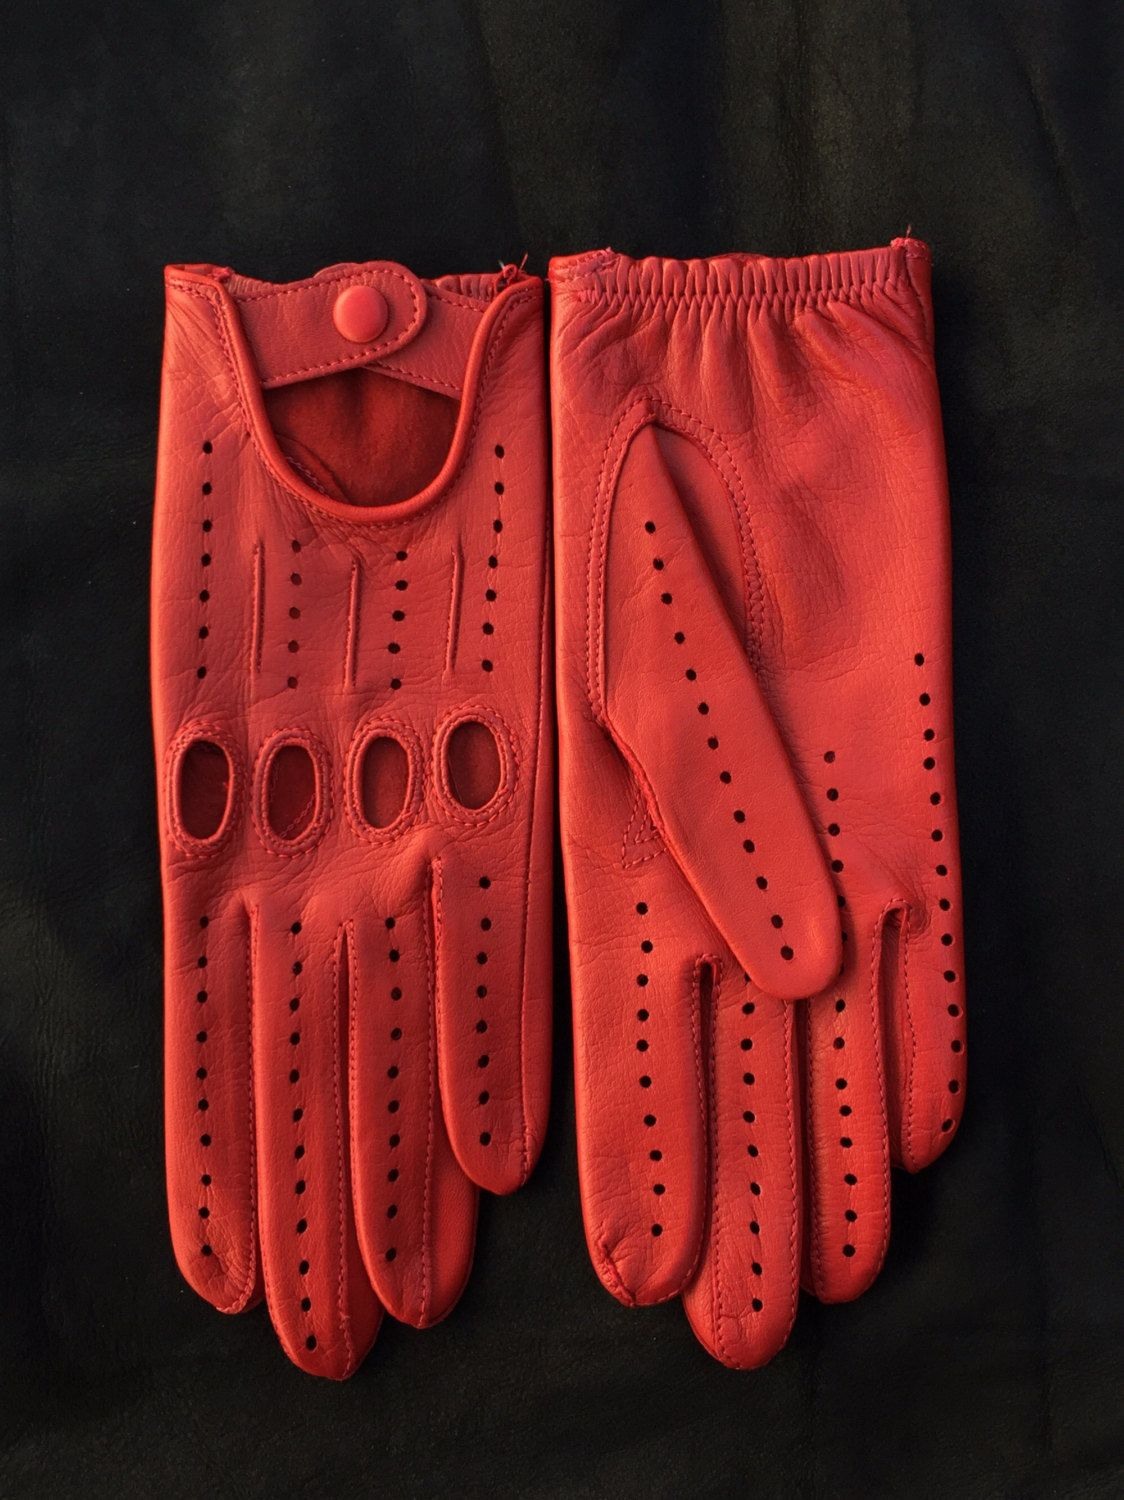 d29844279 Driving leather gloves for women, red leather gloves for ladies, driving  gloves, soft napa italian leather gloves glamour gift for her by ...